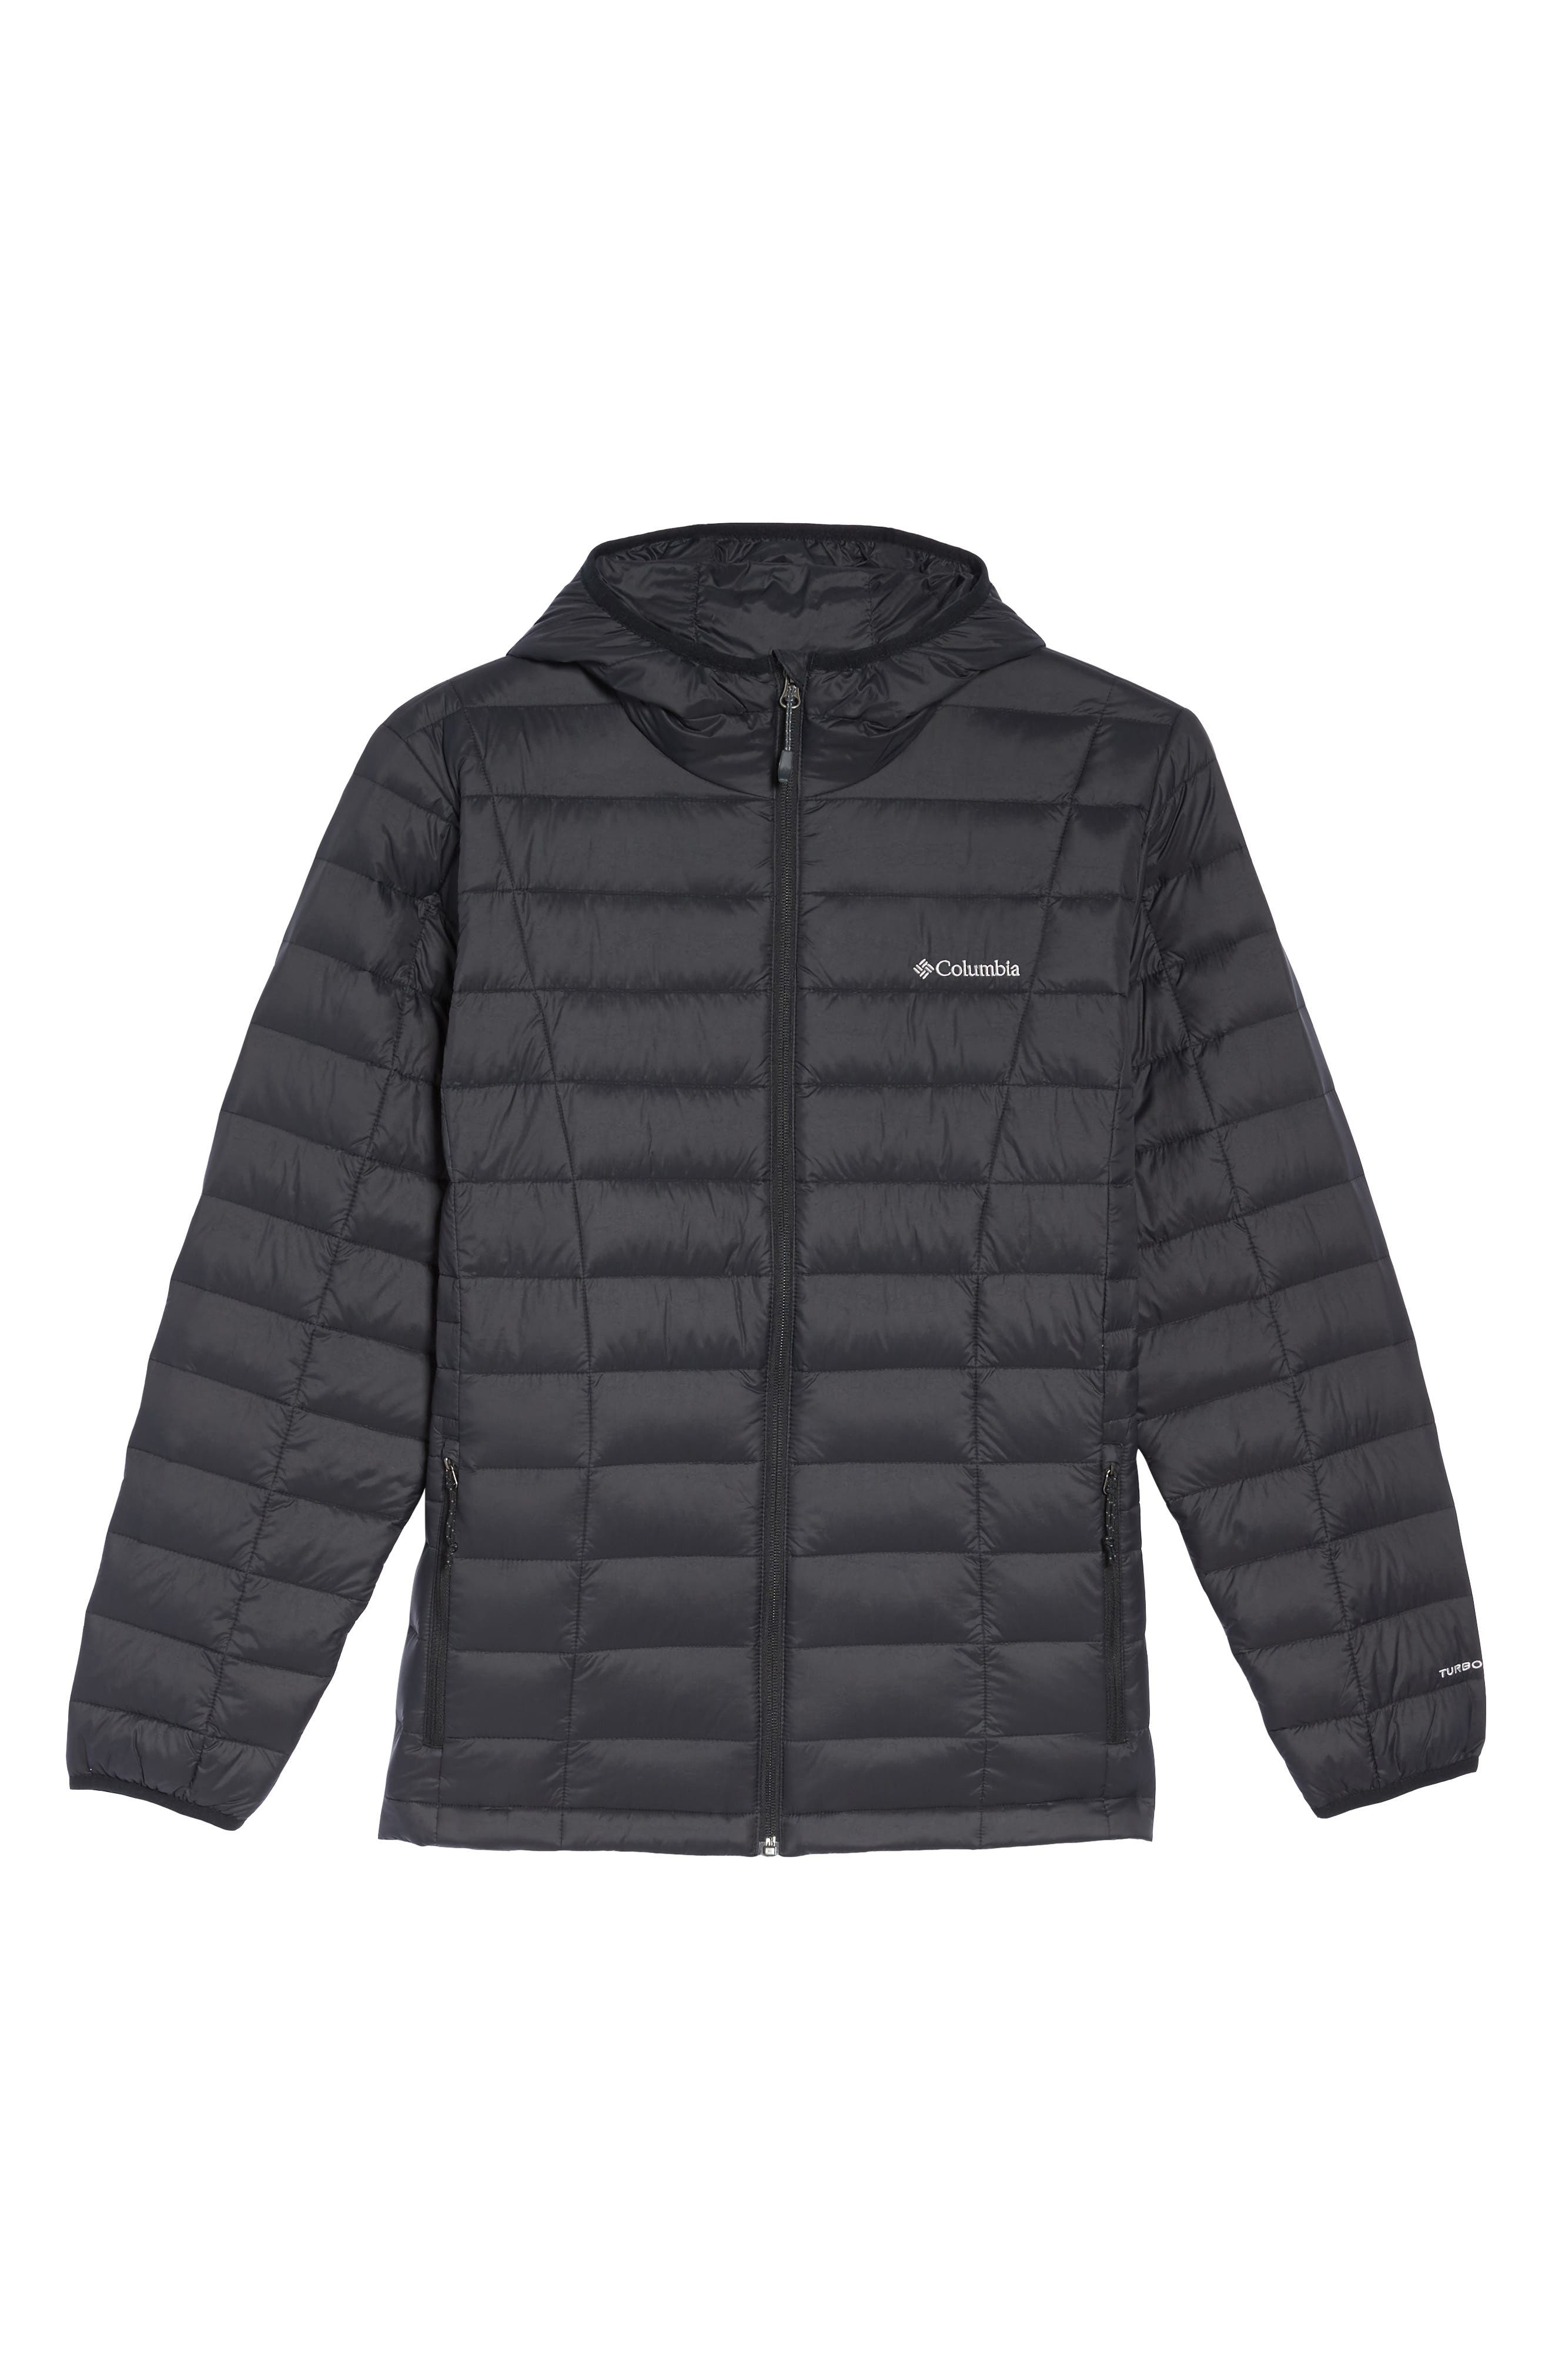 Voodoo Falls 590 Turbodown<sup>™</sup> Down Jacket,                             Alternate thumbnail 5, color,                             010